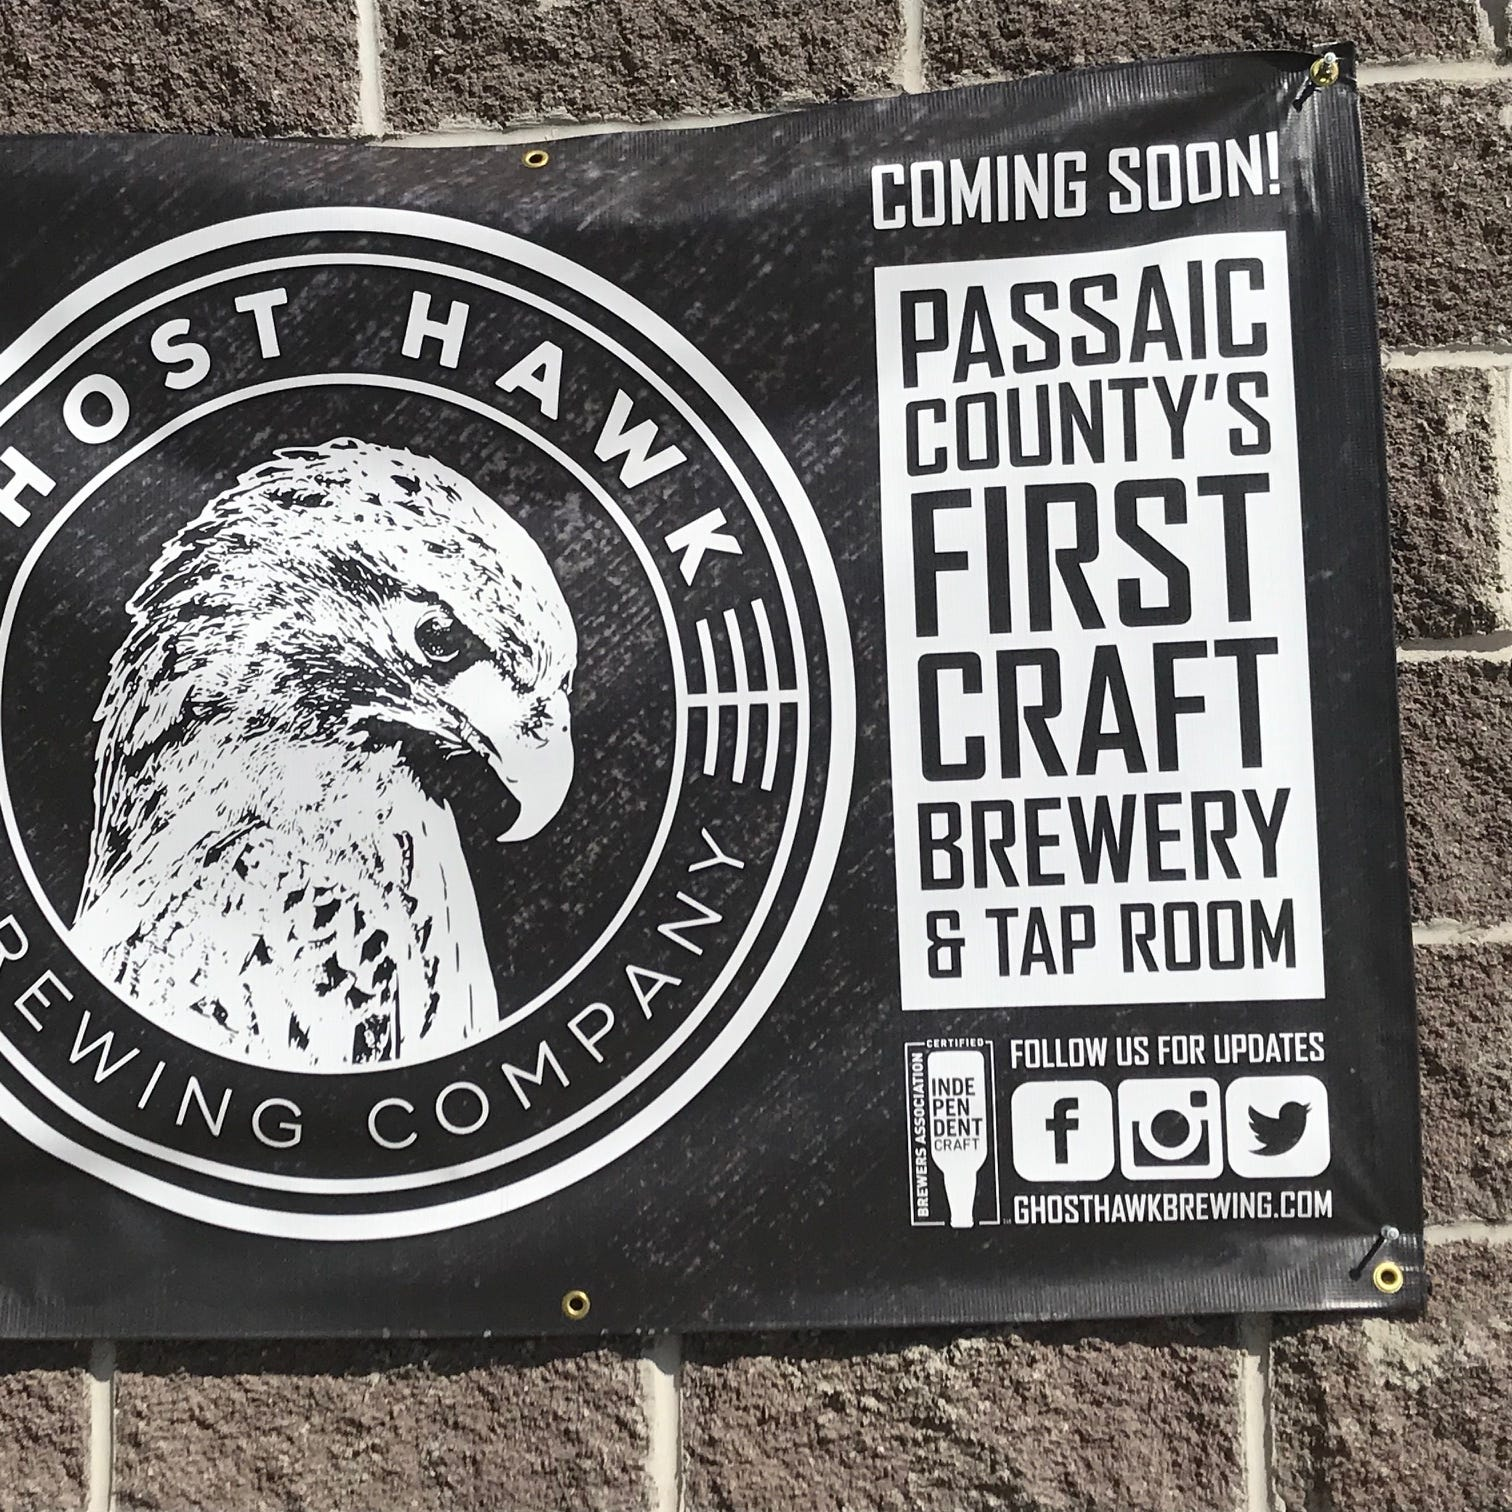 Ghost Hawk Brewery in Clifton to hold grand opening on April 20